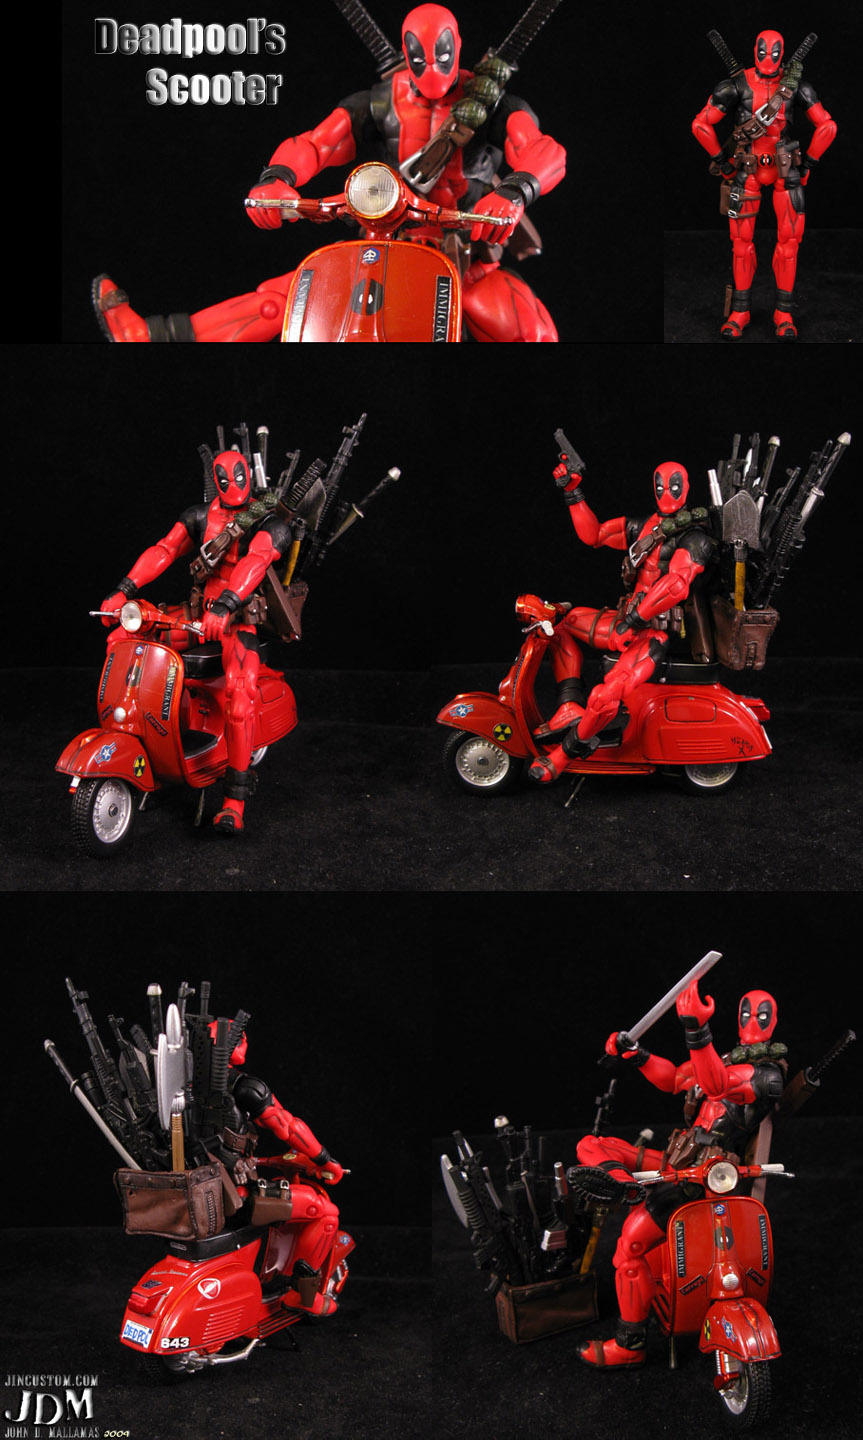 Deadpool Scooter